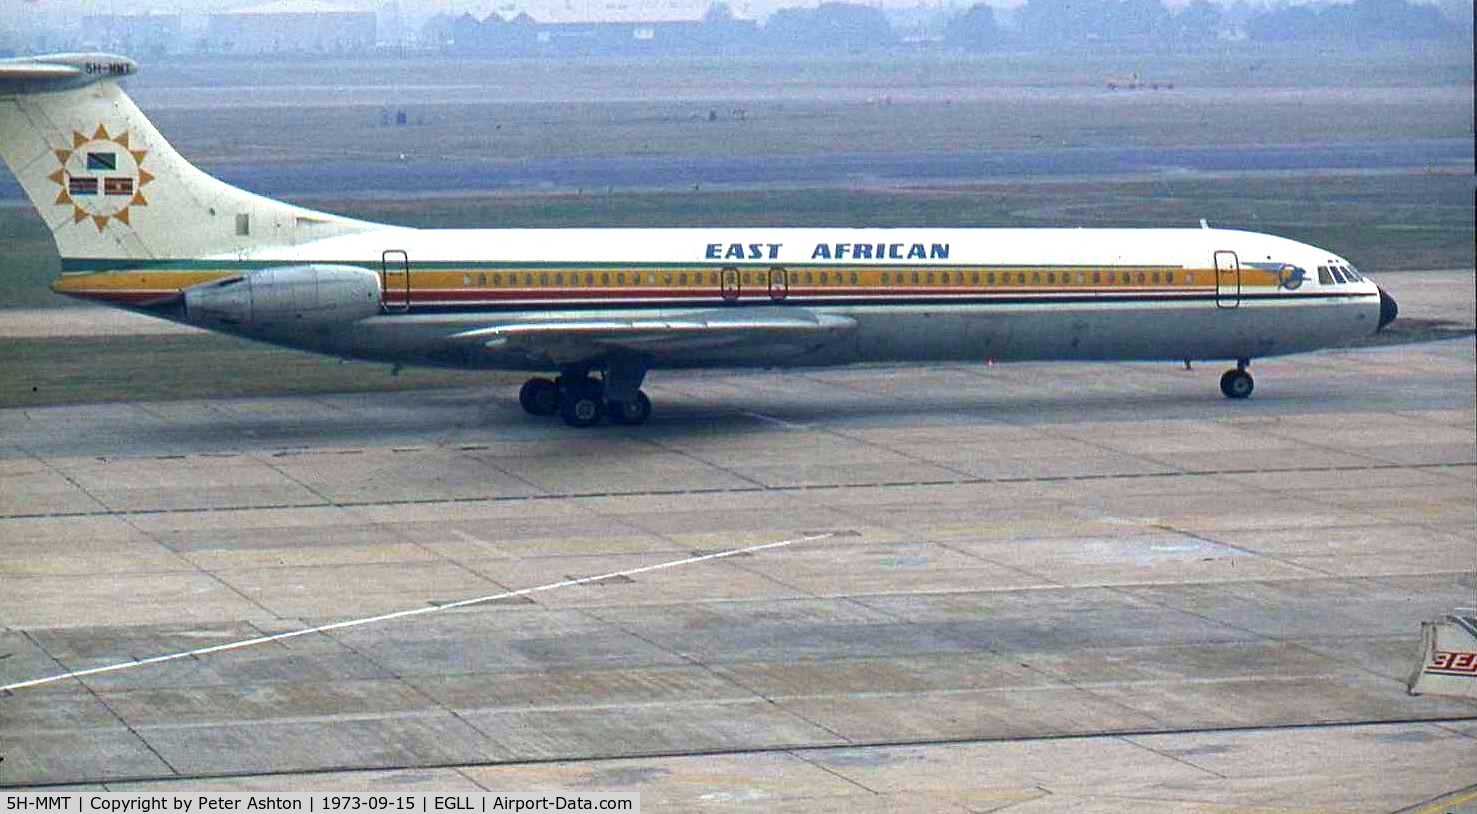 5H-MMT, 1966 Vickers Super VC10 Srs 1154 C/N 882, East African Vickers VC10 1153